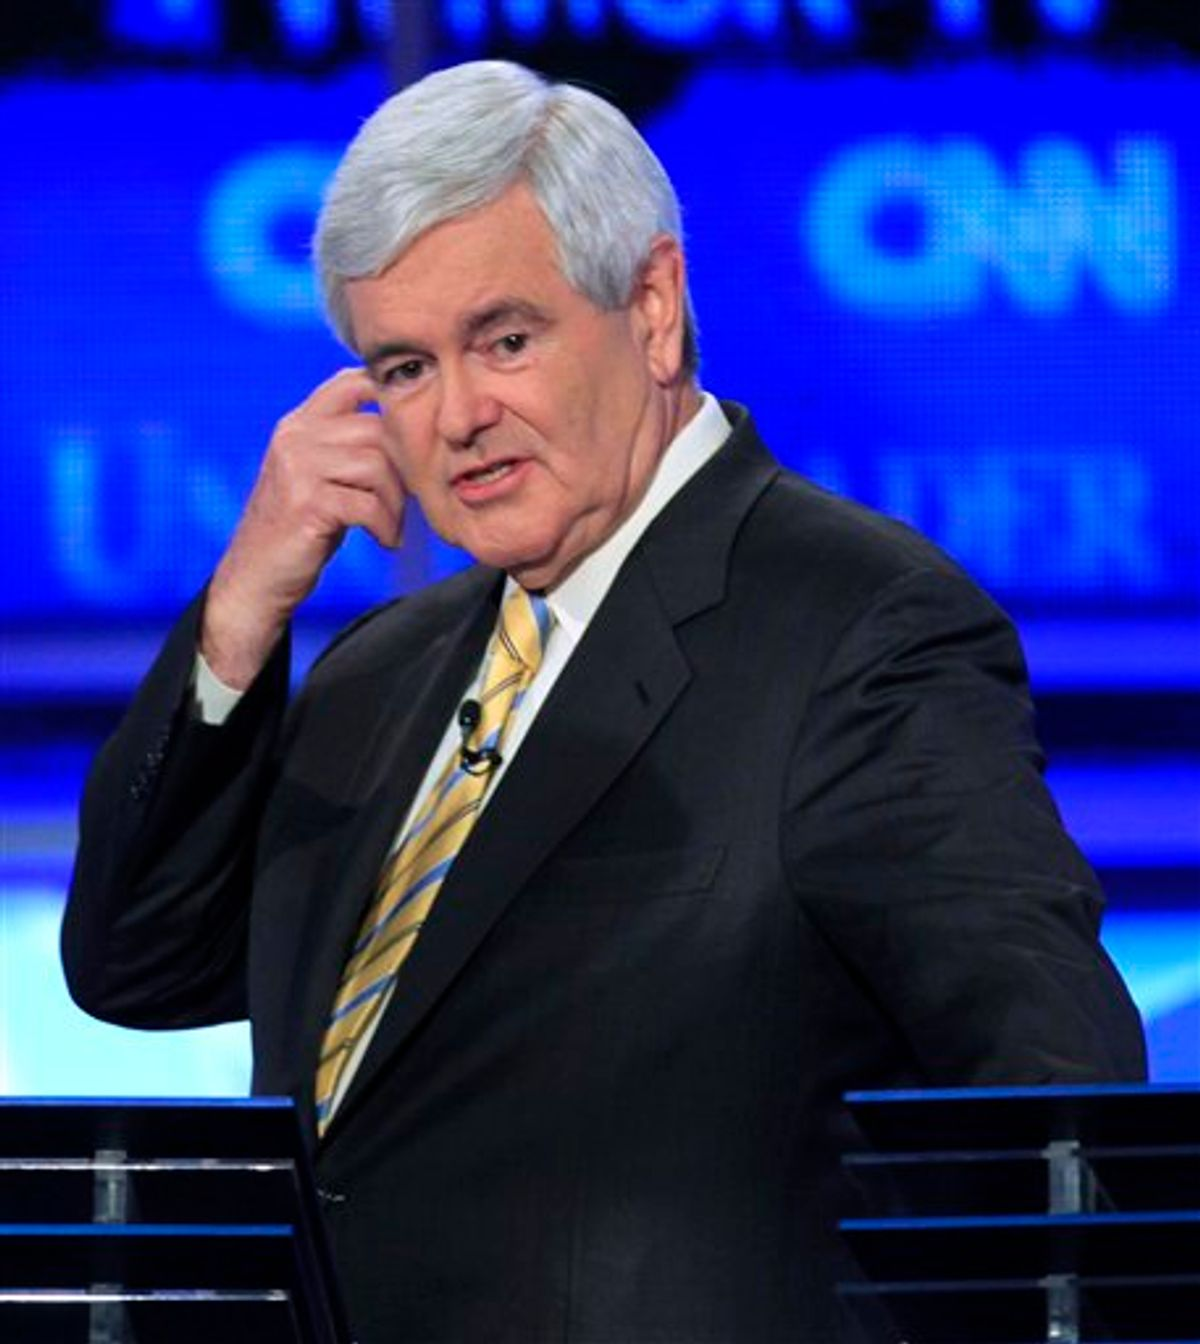 Former House Speaker Newt Gingrich is seen during a break in the first New Hampshire Republican presidential debate at St. Anselm College in Manchester, N.H., Monday, June 13, 2011. (AP Photo/Jim Cole) (AP)